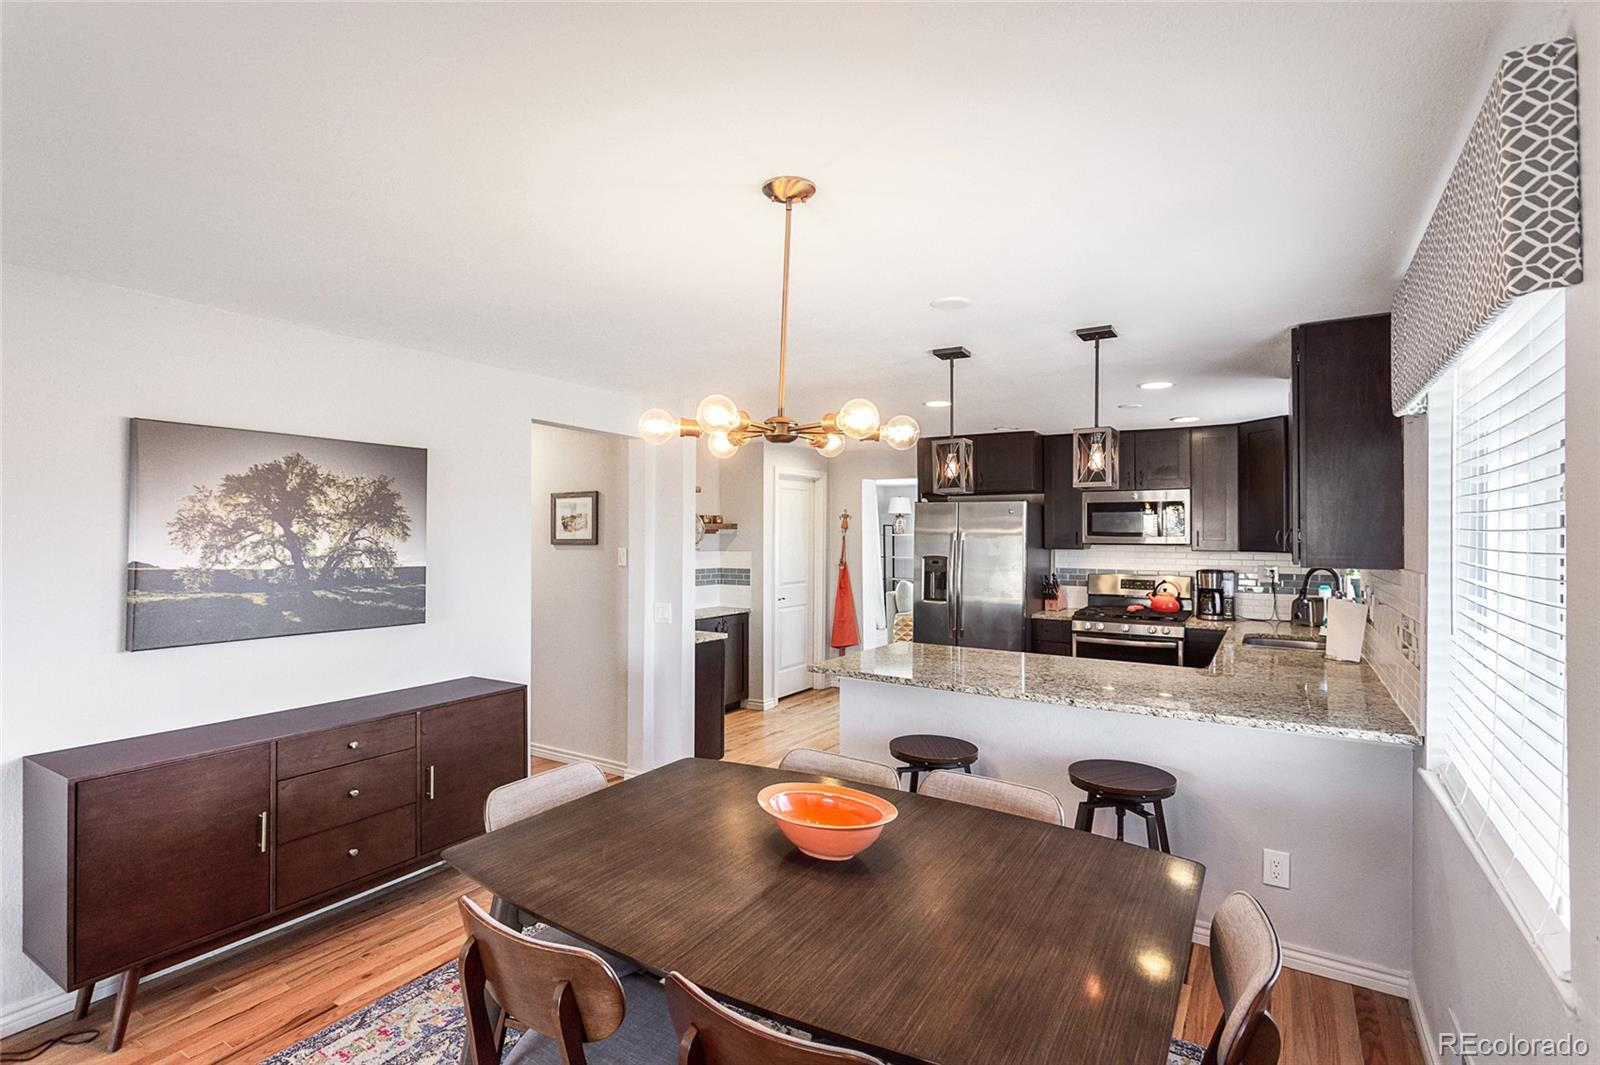 MLS# 4969690 - 8 - 9570 W 54th Place, Arvada, CO 80002